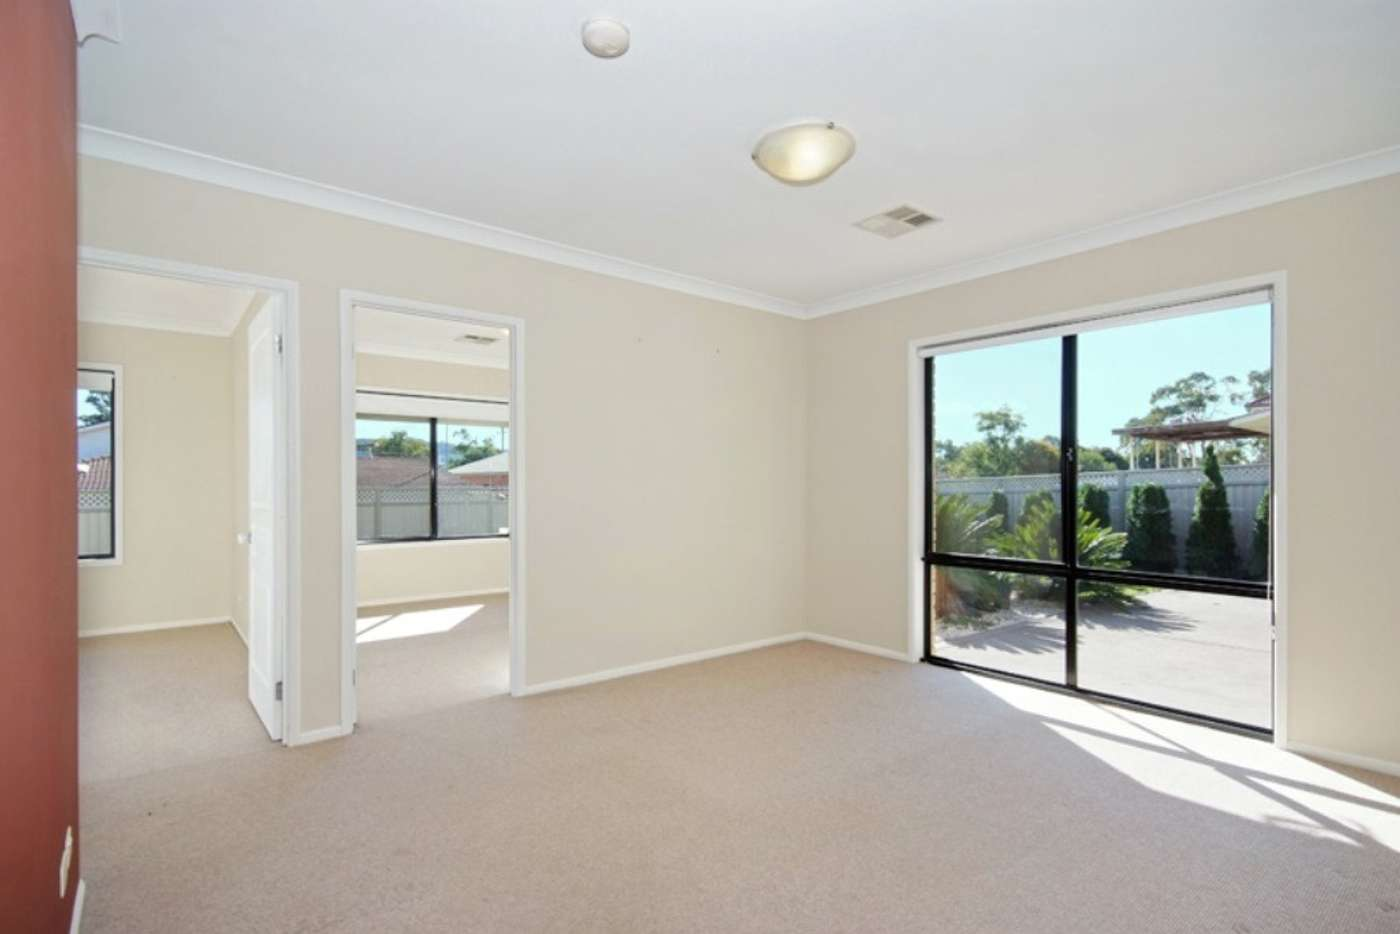 Sixth view of Homely house listing, 73 Yorston Street, Warners Bay NSW 2282